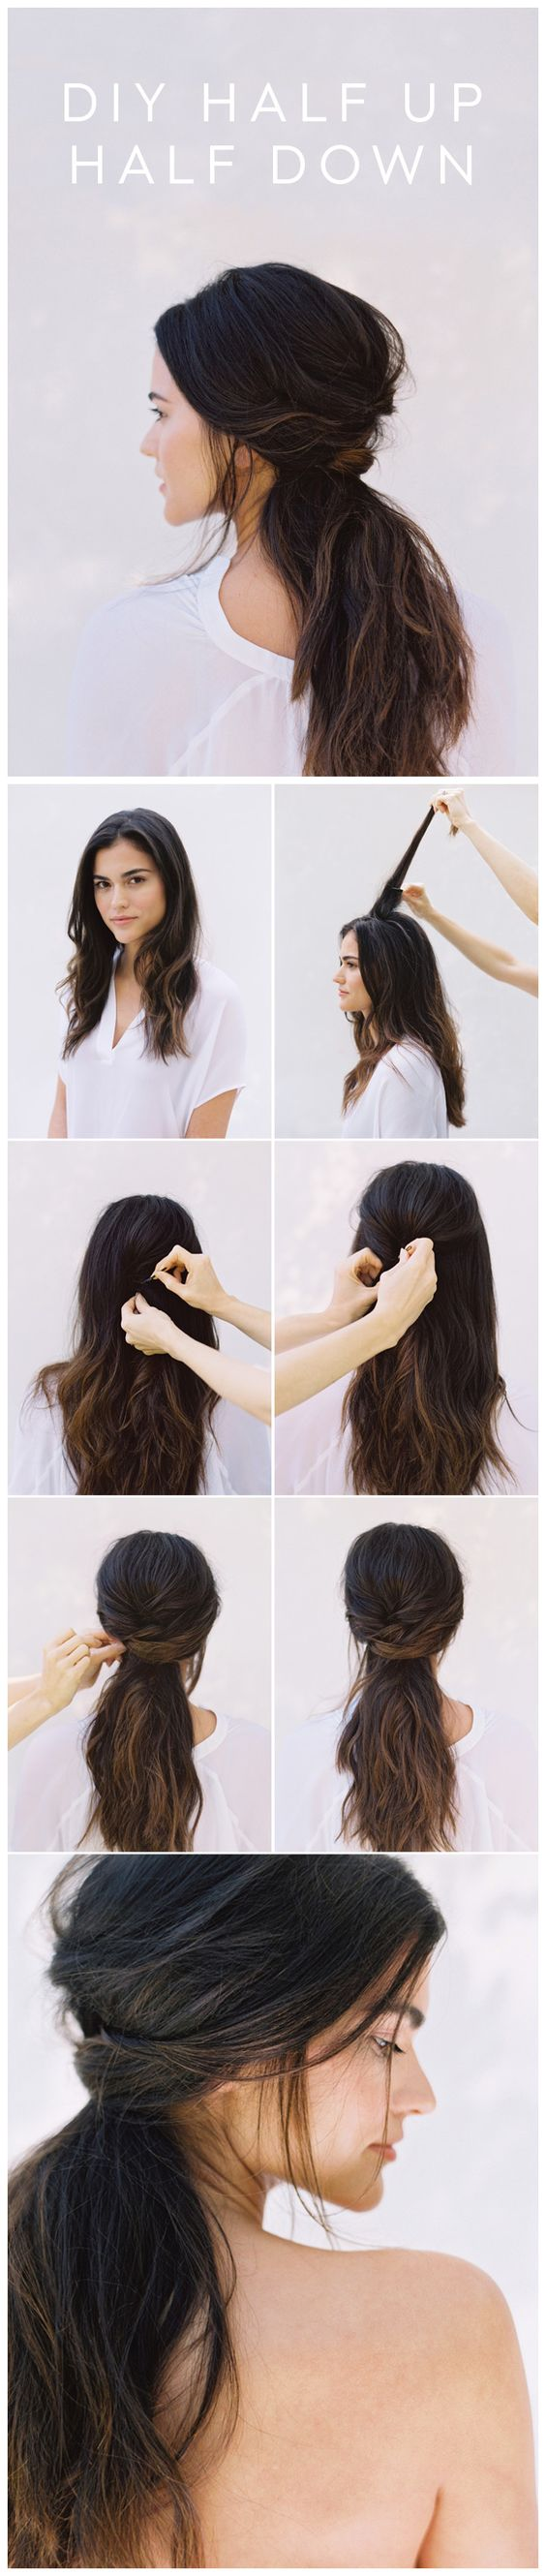 DIY HALF UP HALF DOWN | CLIP-IN HAIR EXTENSIONS BY INSTALENGTH.COM